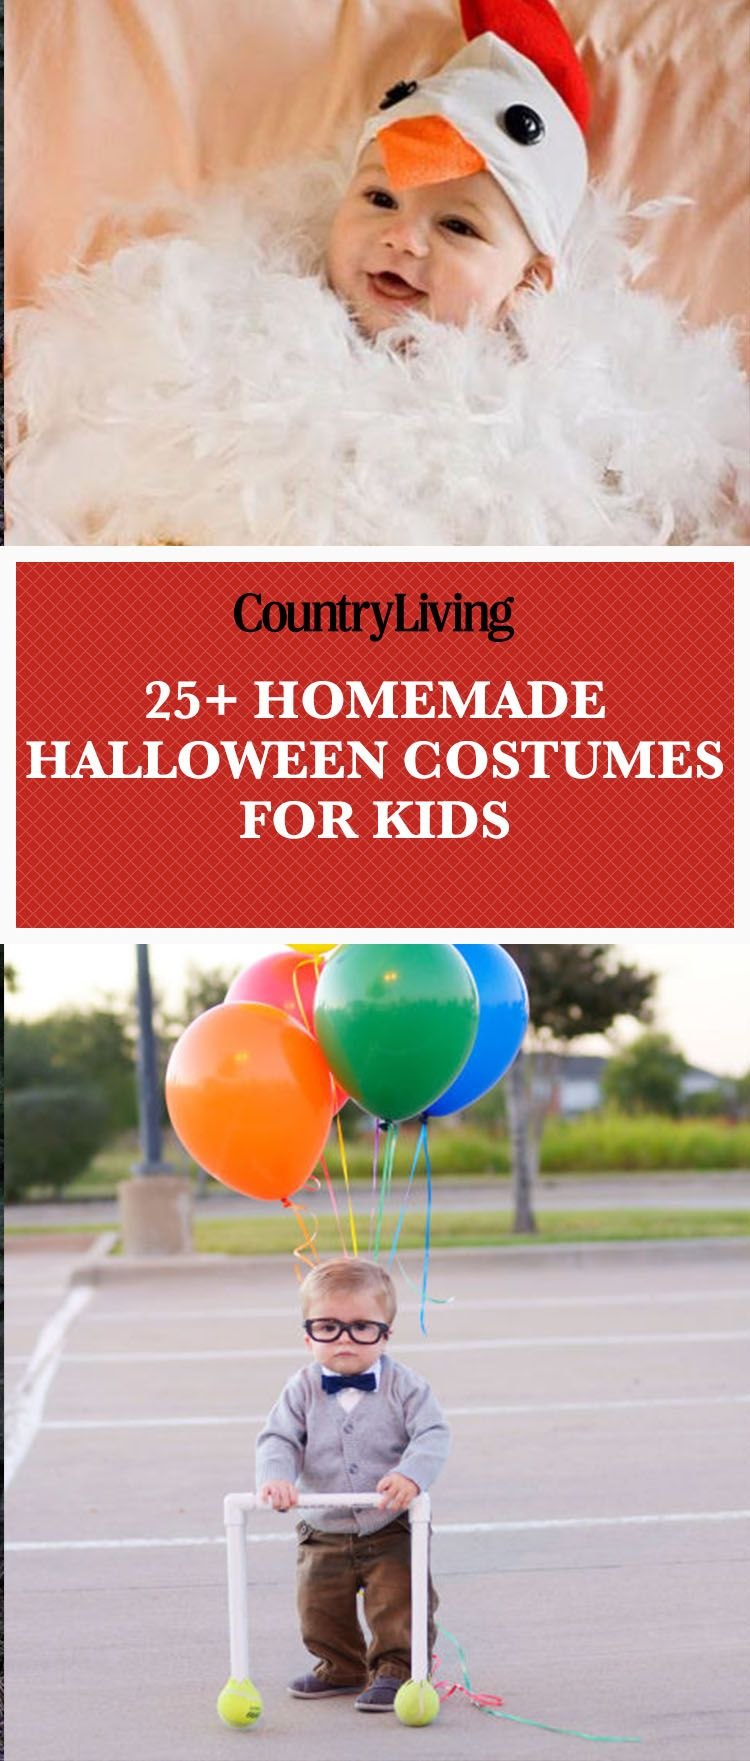 62 utterly adorable homemade halloween costumes for kids halloween 62 utterly adorable homemade halloween costumes for kids solutioingenieria Image collections